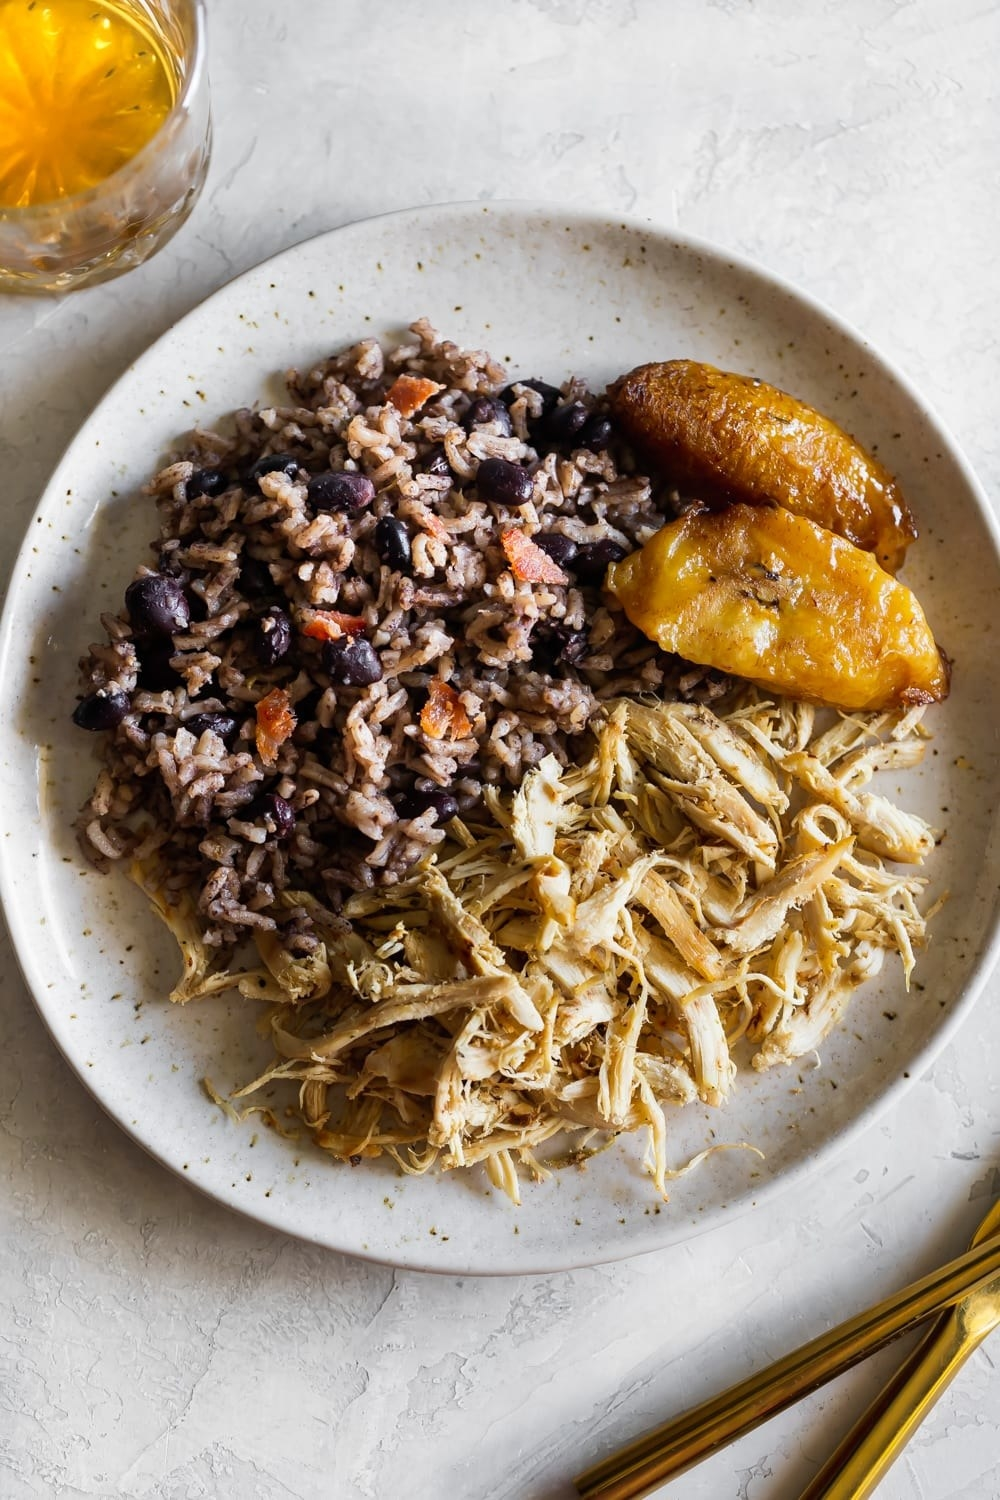 A plate of arroz congri with a side of plantains.